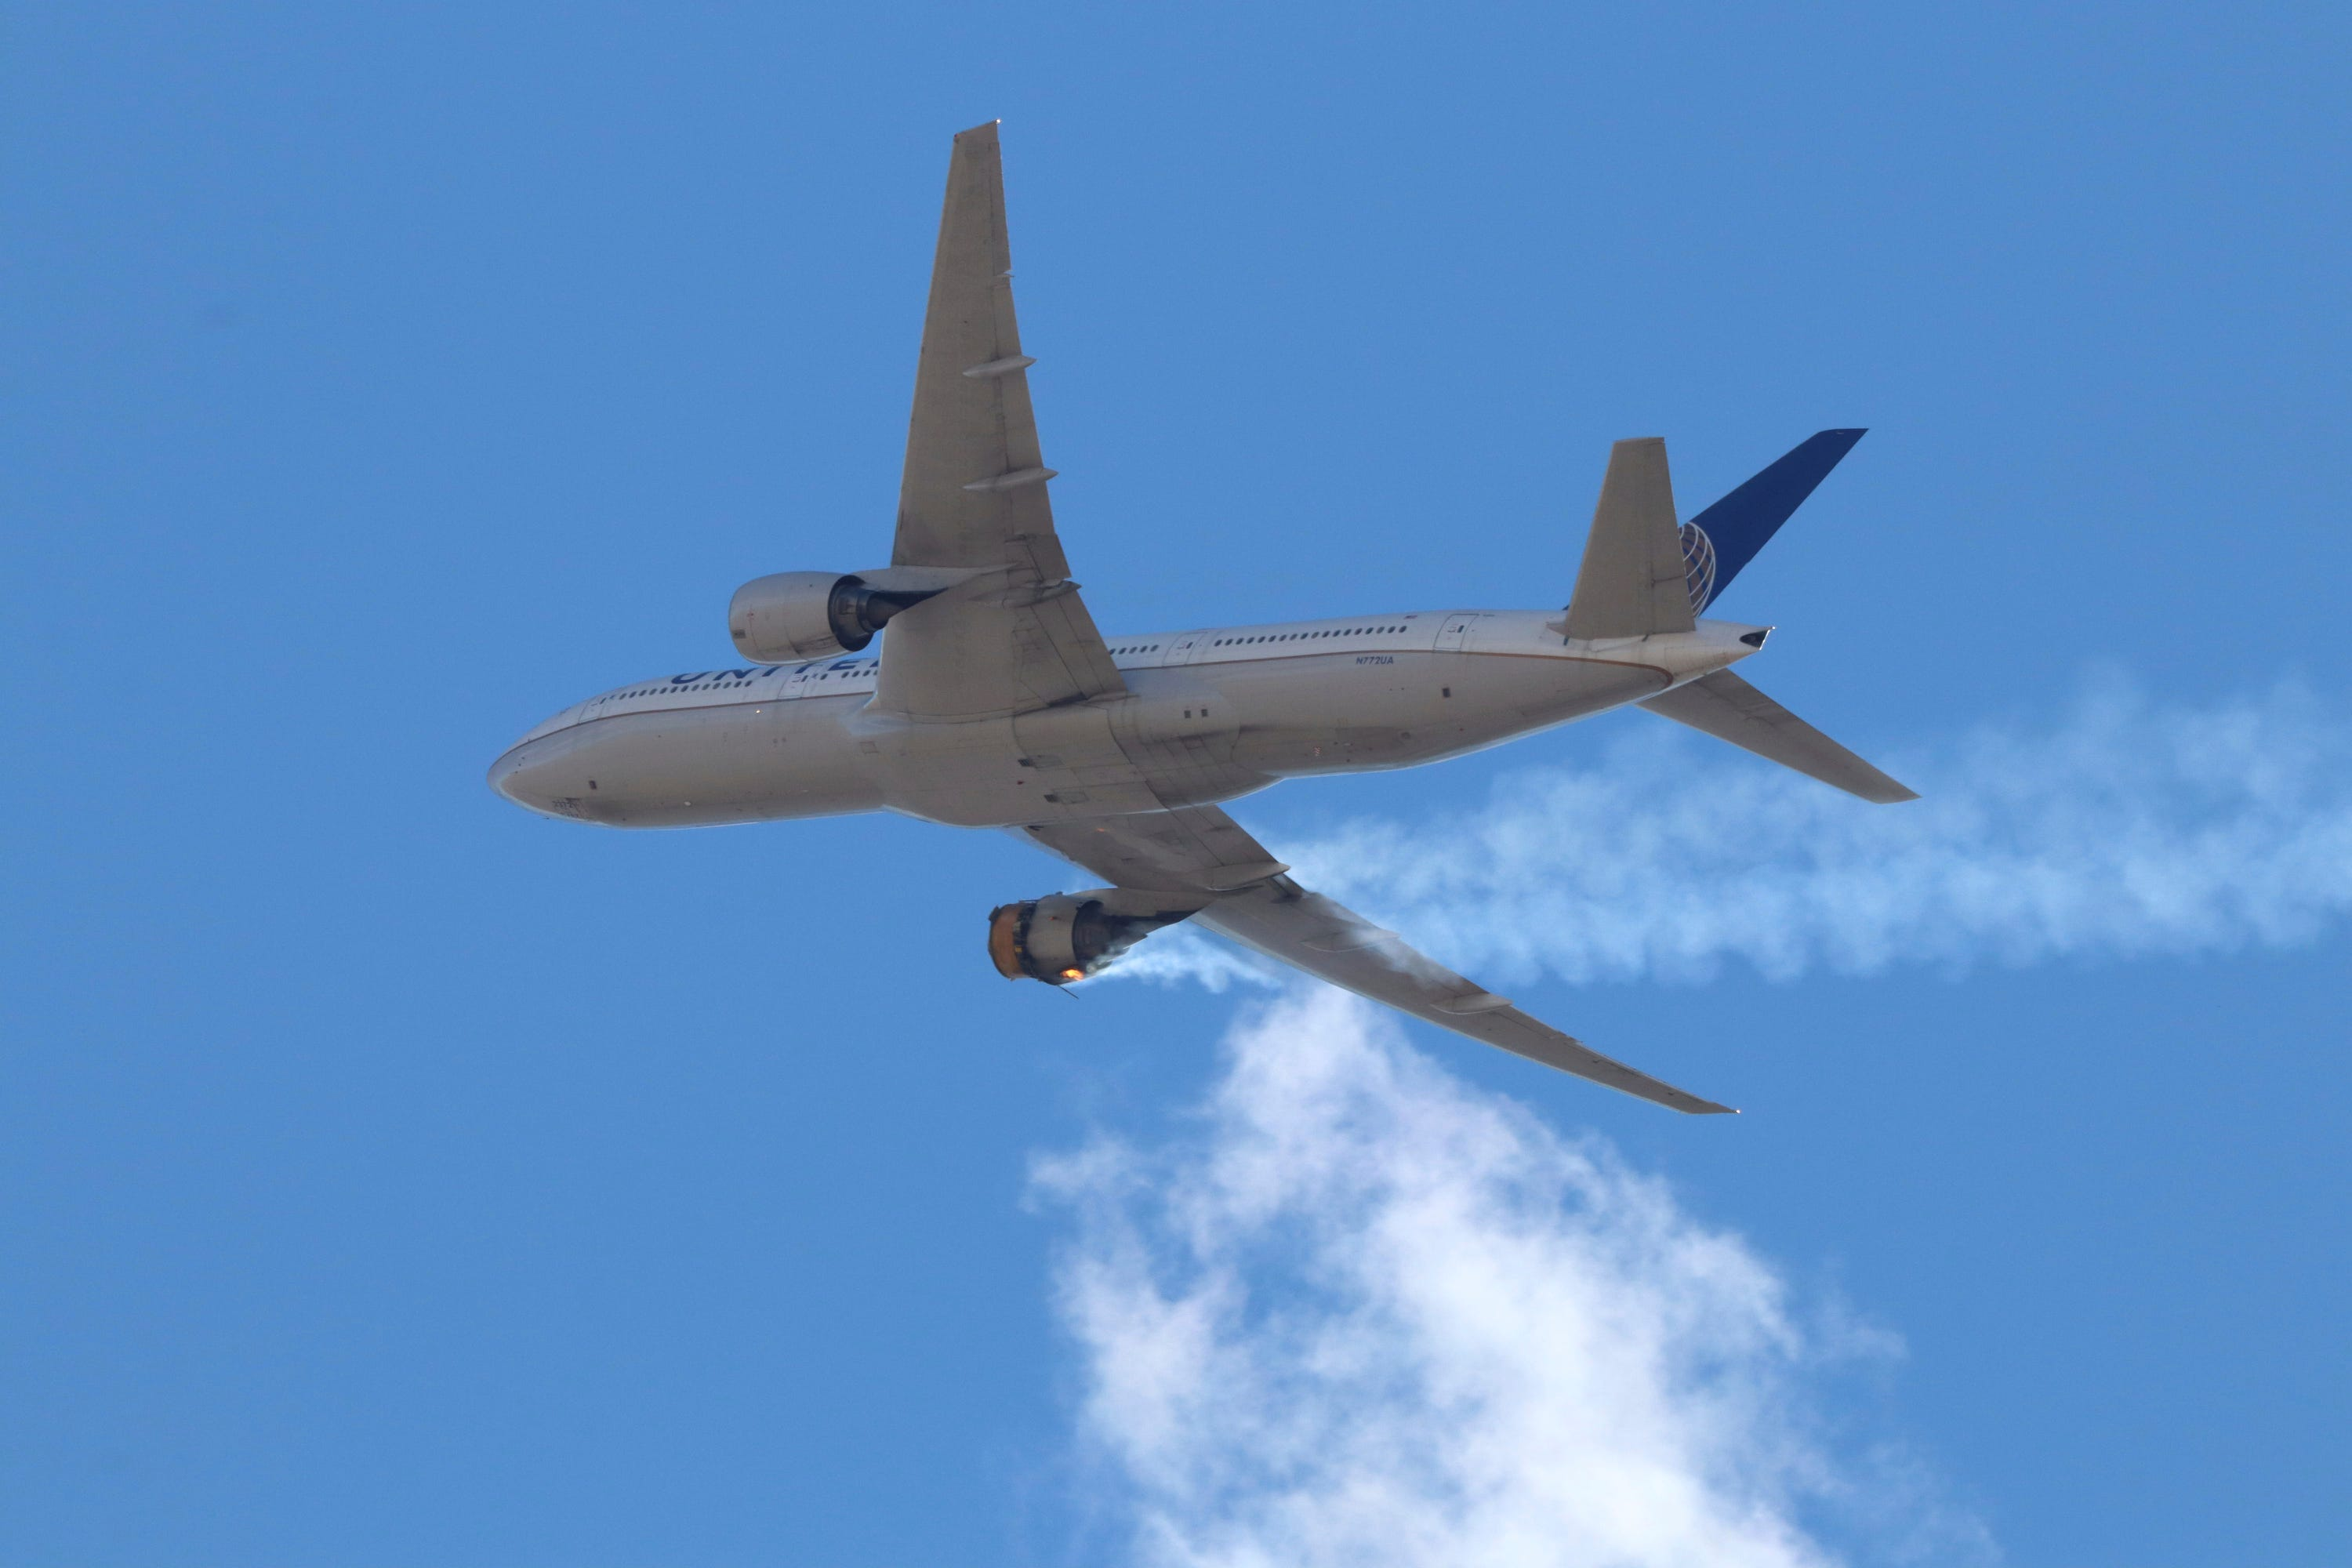 Ask the Captain: Did the damaged Boeing 777 have to dump fuel before making emergency landing?